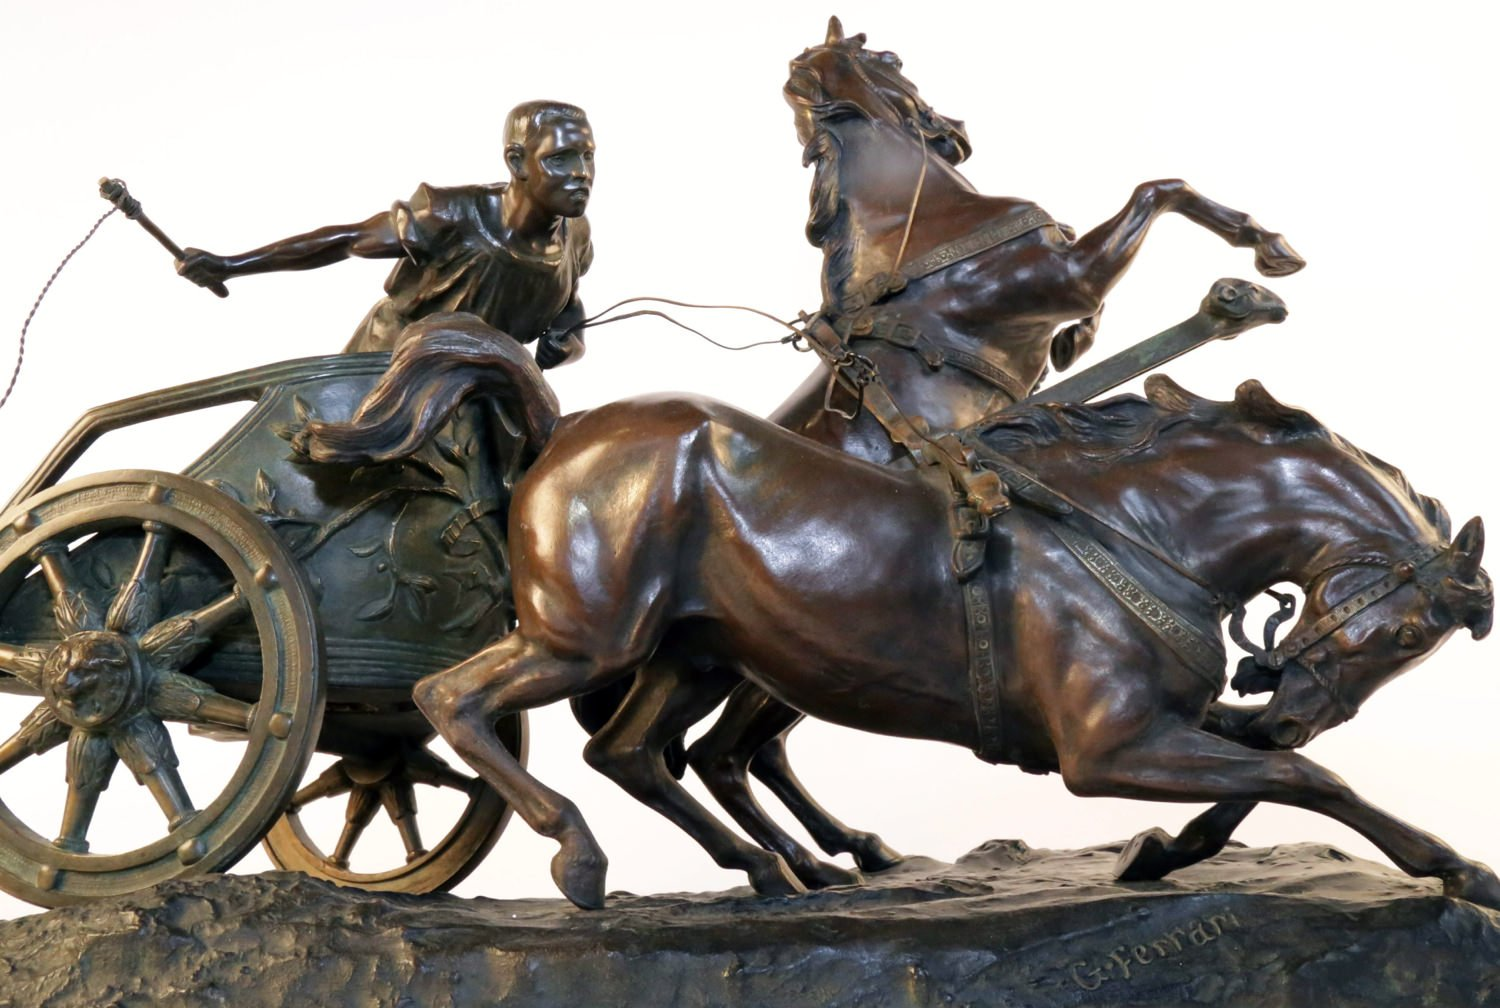 Ferrari Driving School >> Giuseppe Ferrari 19th Century Bronze, Horse and Chariot | Collection | WOLFS Fine Paintings and ...